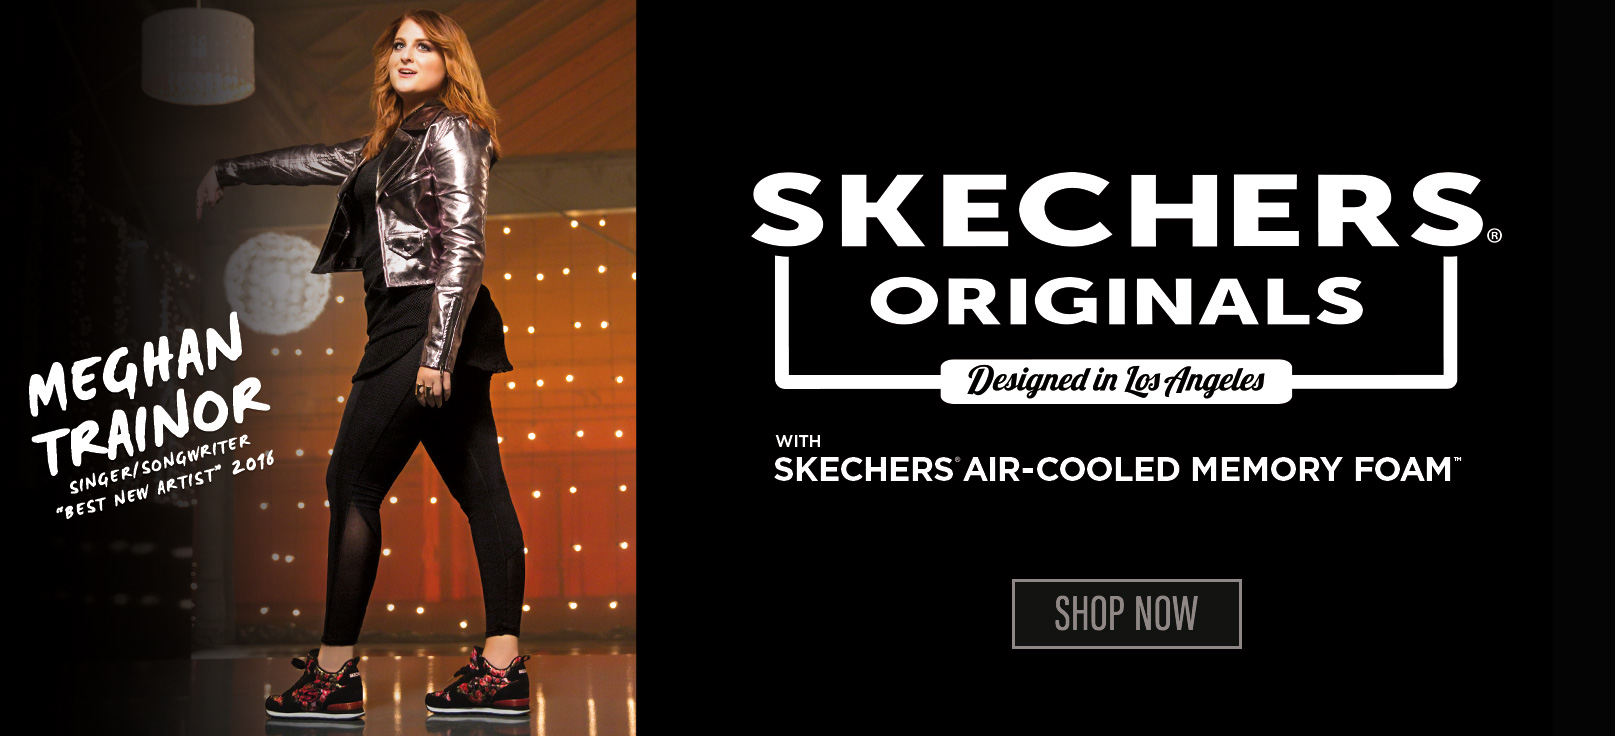 Shop on Skechers.com for women including Memory Foam sneakers, sandals, women's casual shoes, women's athletic sport shoes, Skechers Originals and Air Cooled Memory Foam shoes.